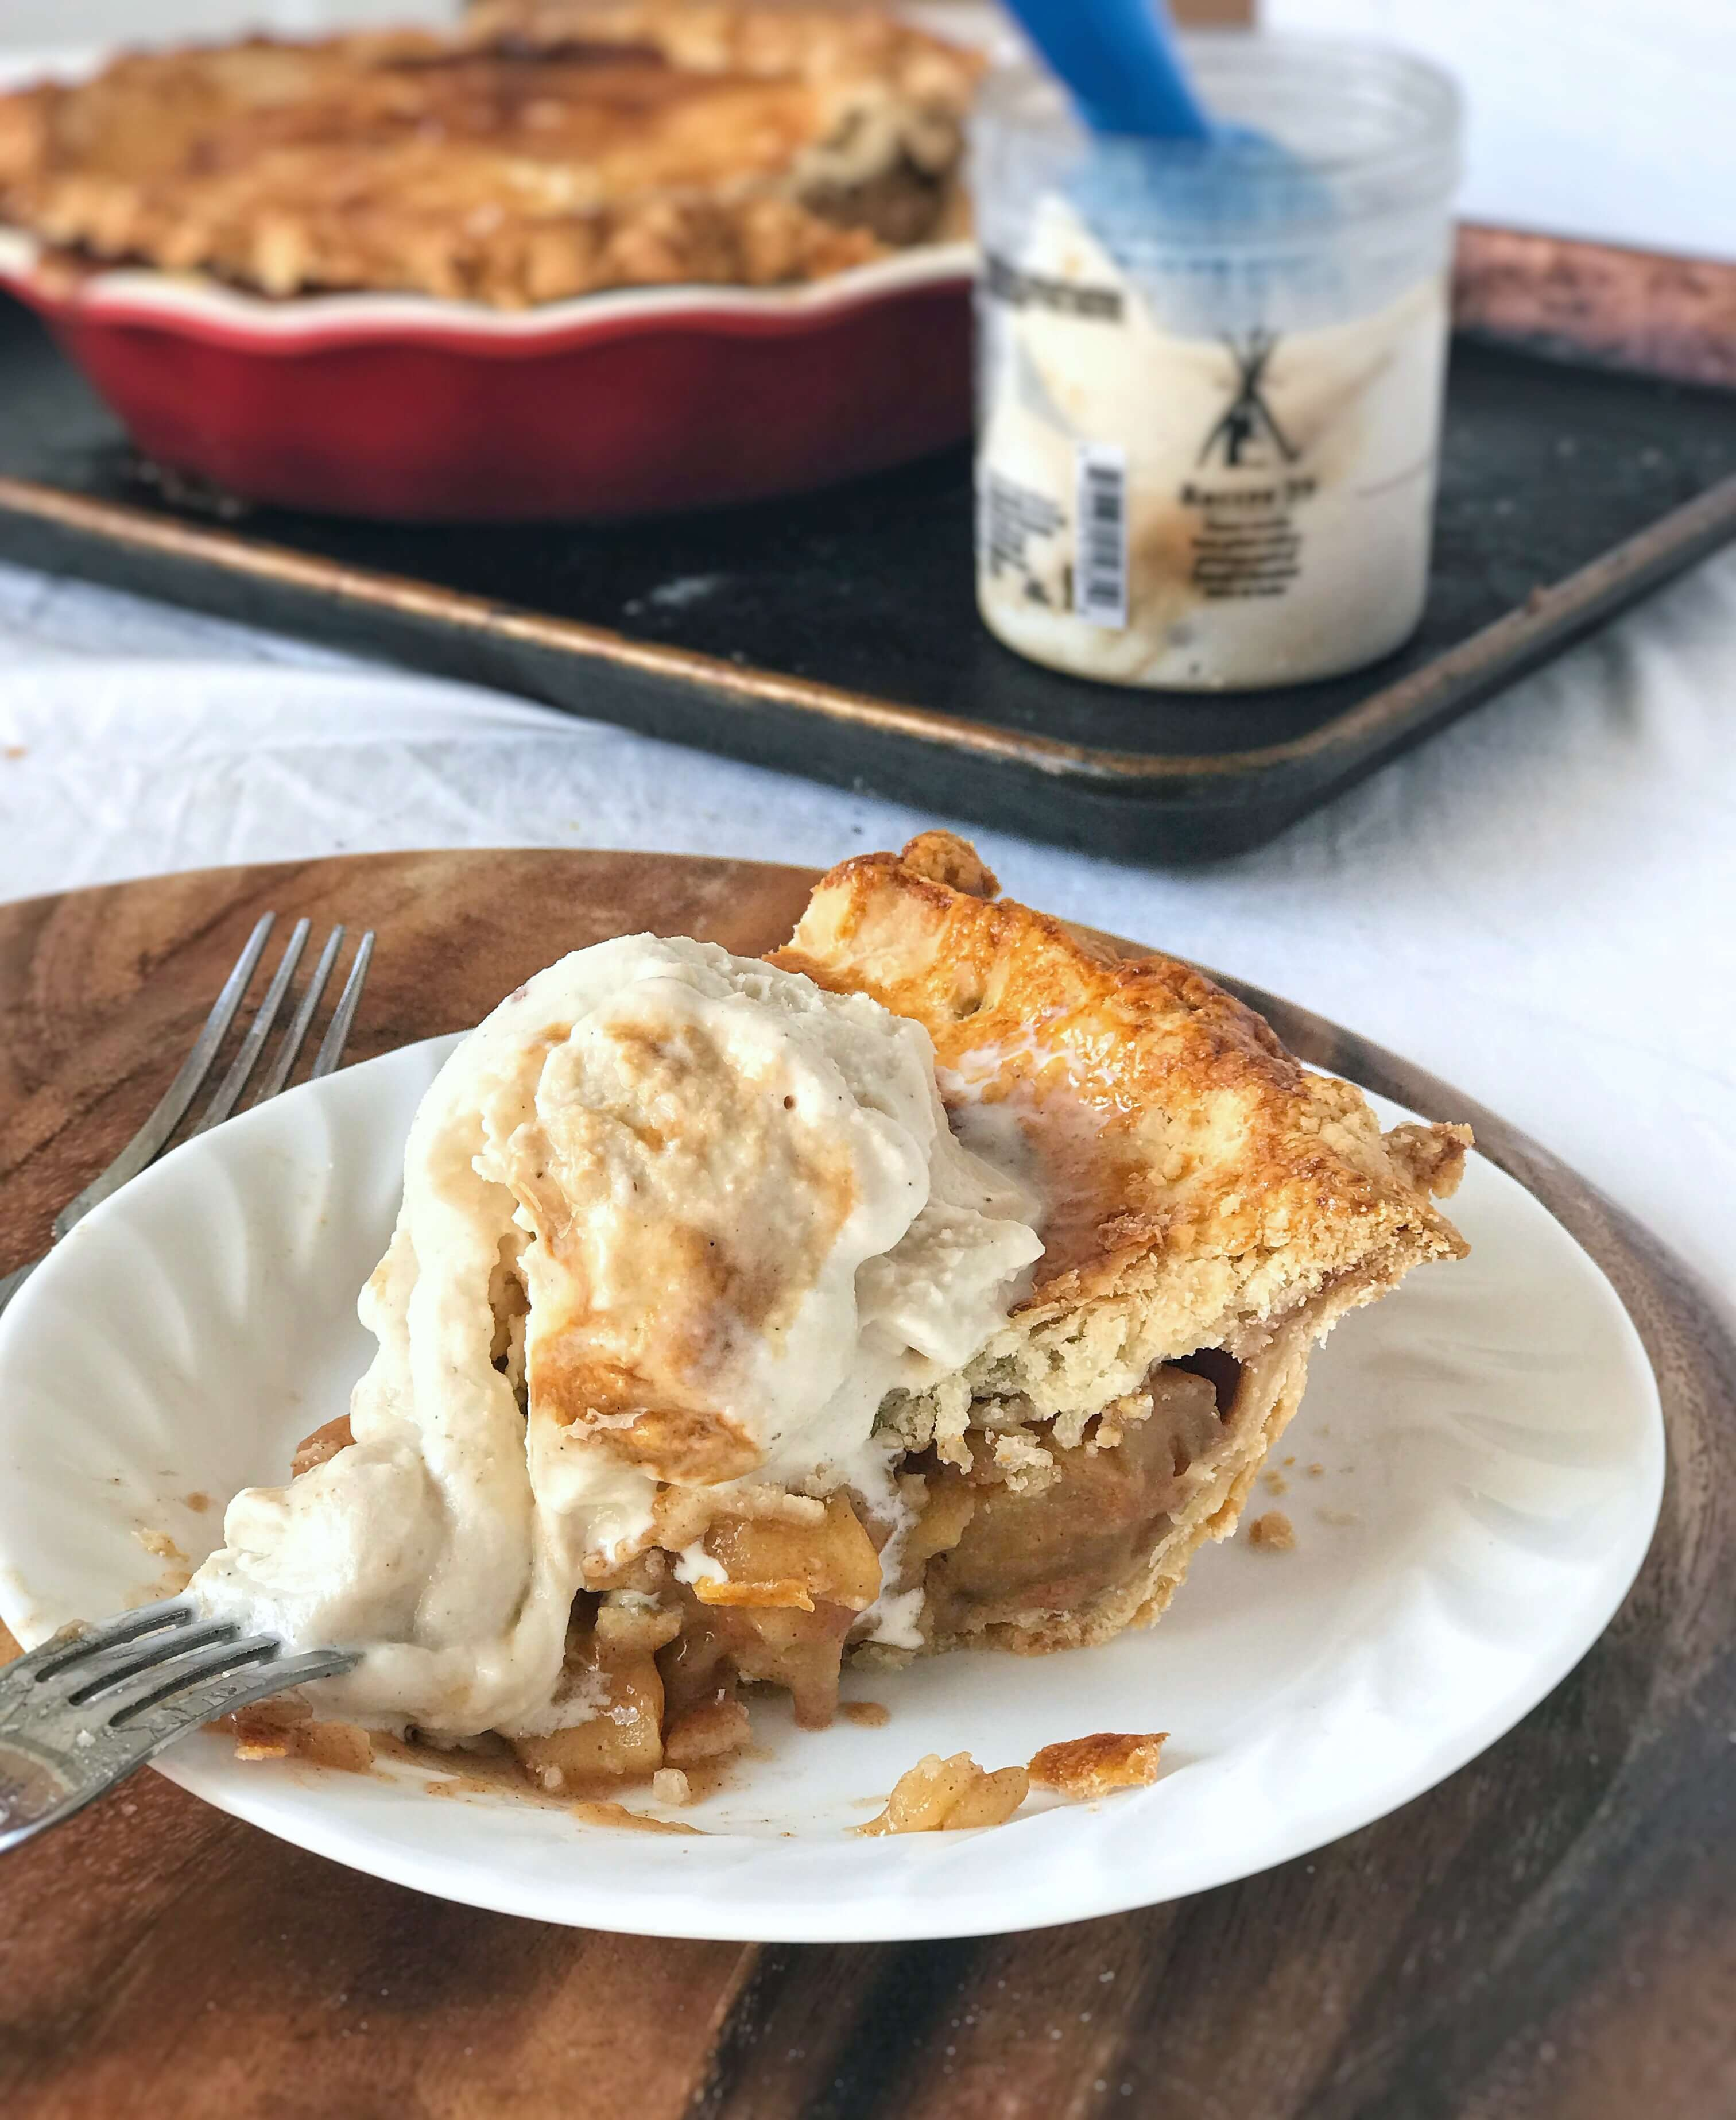 Slice of apple pie with vanilla caramel ice cream. Apple pie from scratch that slices beautifully with amazingly flaky crusts, spiced apple filling that holds its shape, and is perfect for any holiday!